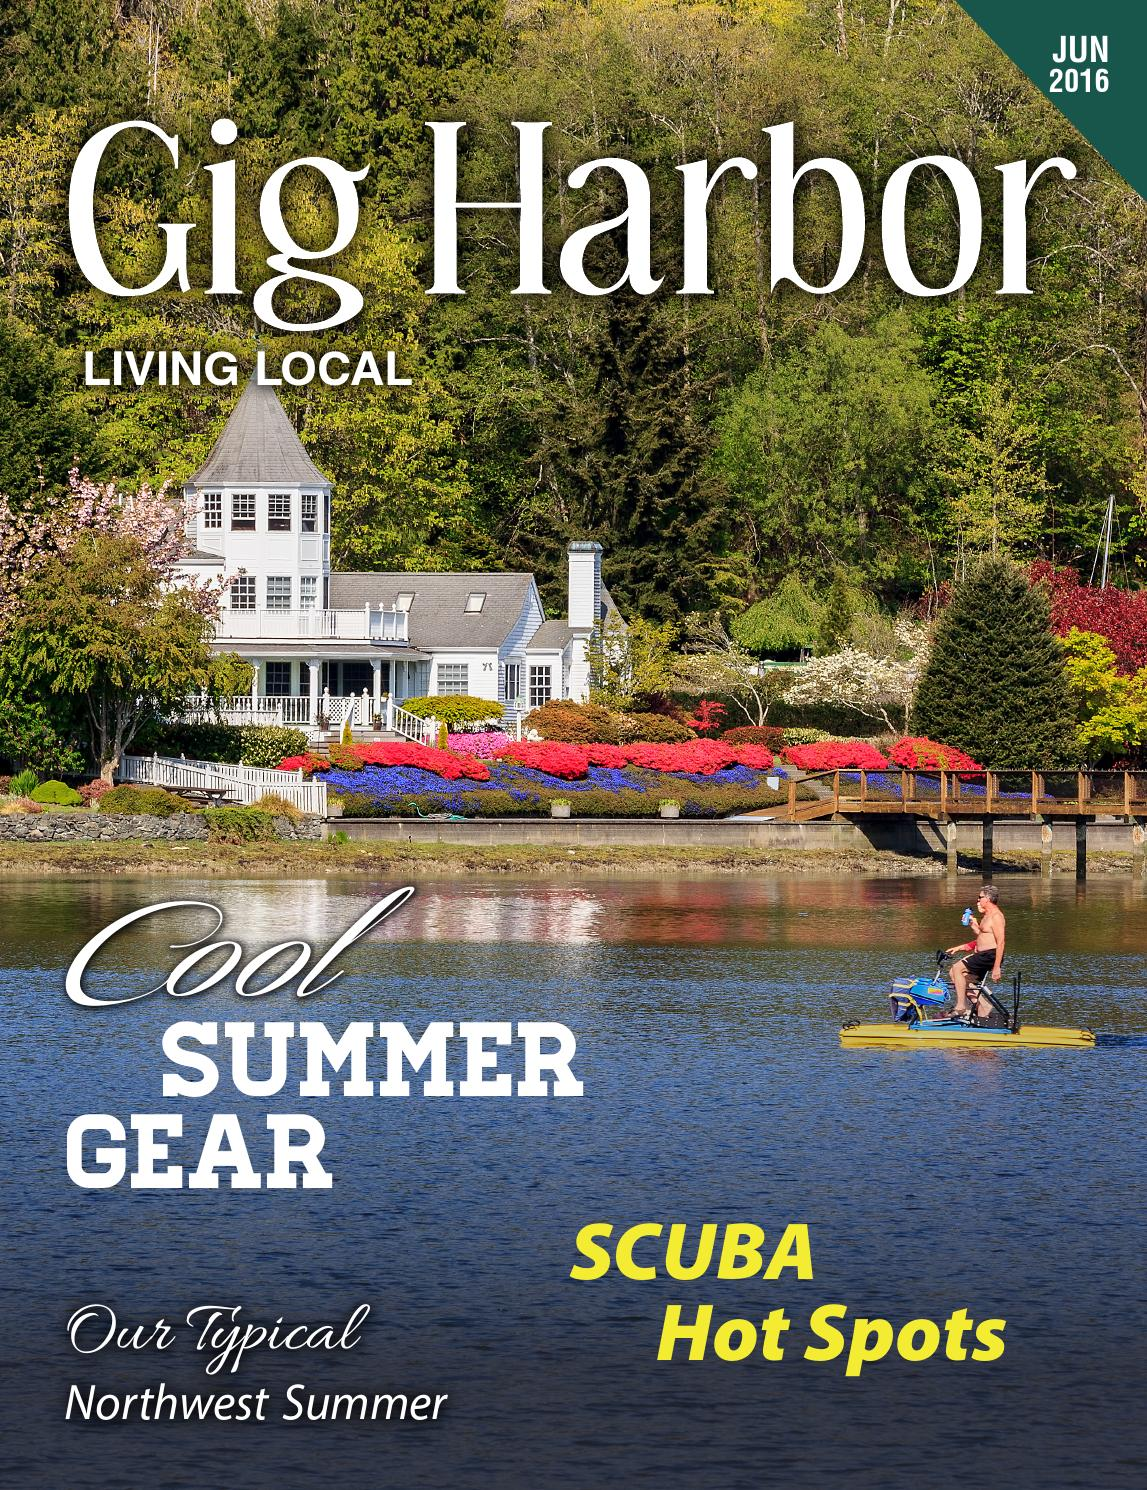 Gig harbor physical therapy - Gig Harbor Physical Therapy 45